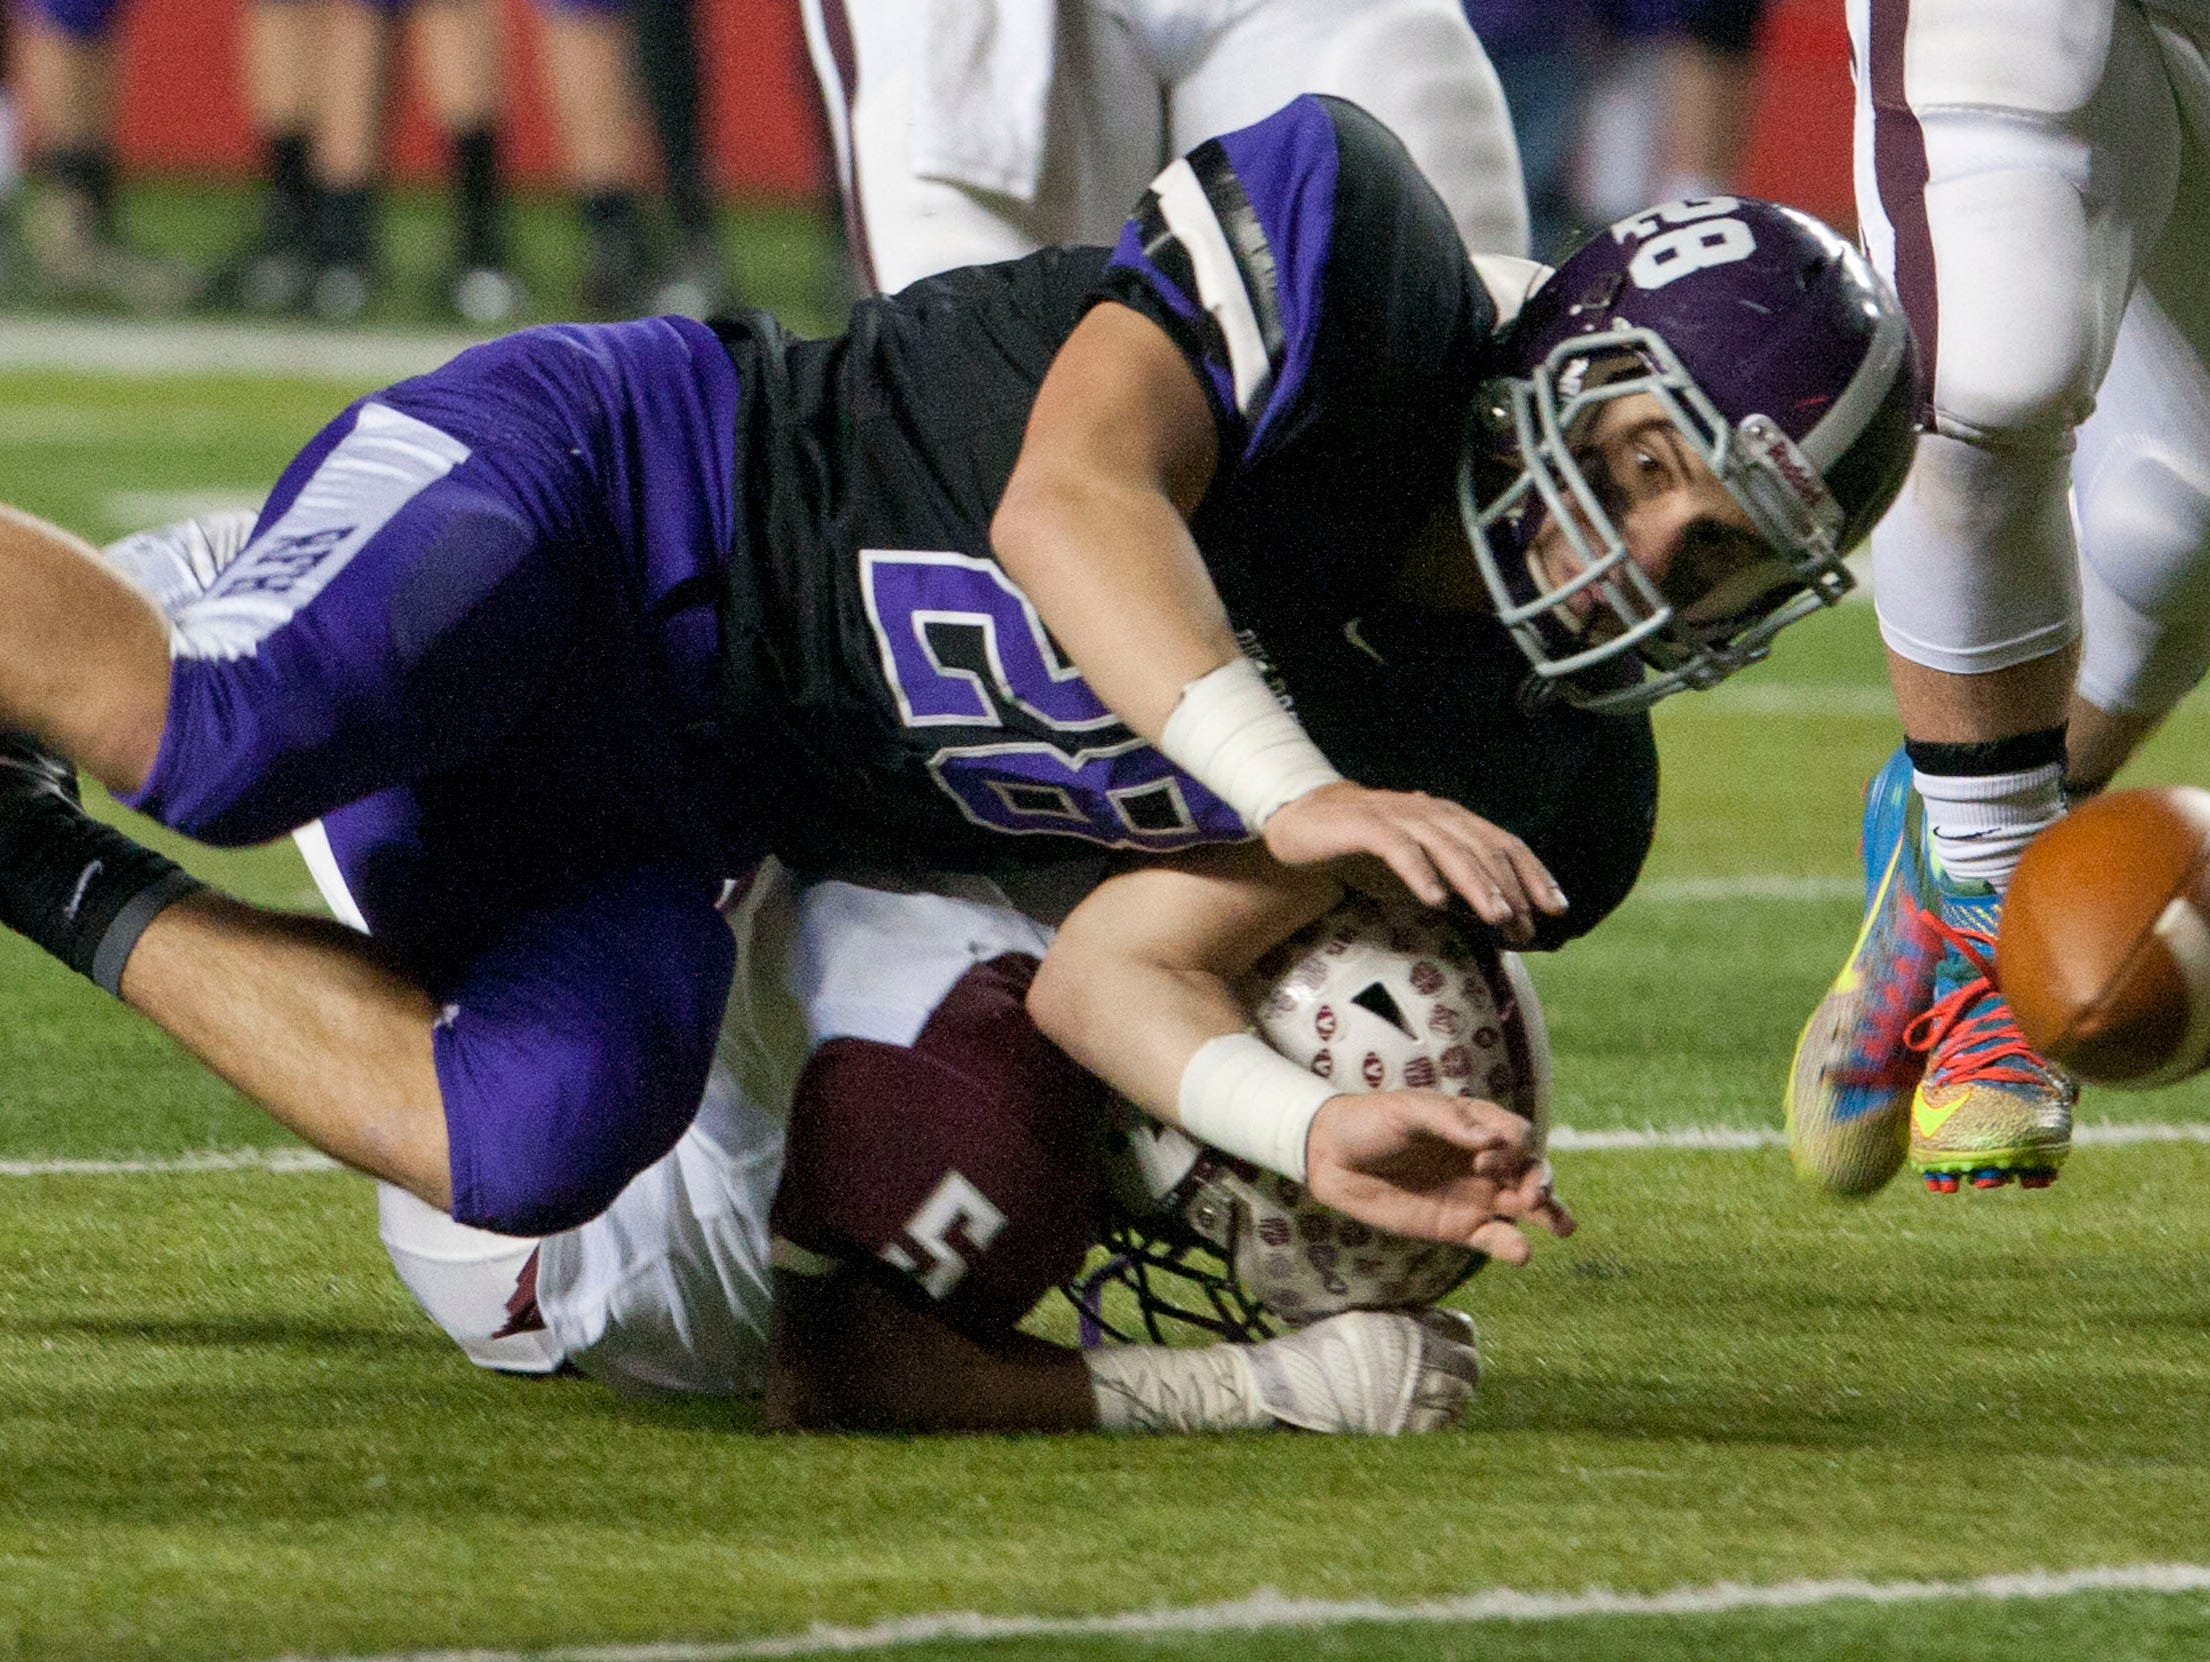 NJSIAA Group 3 state championship football Red Bank Regional vs. Rumson Rumson #28 Pat Russo dives for a ball fumbled by Red Bank #5 Alim Godsey—December 5, 2015-Rutgers, NJ.-Staff photographer/Bob Bielk/Asbury Park Press